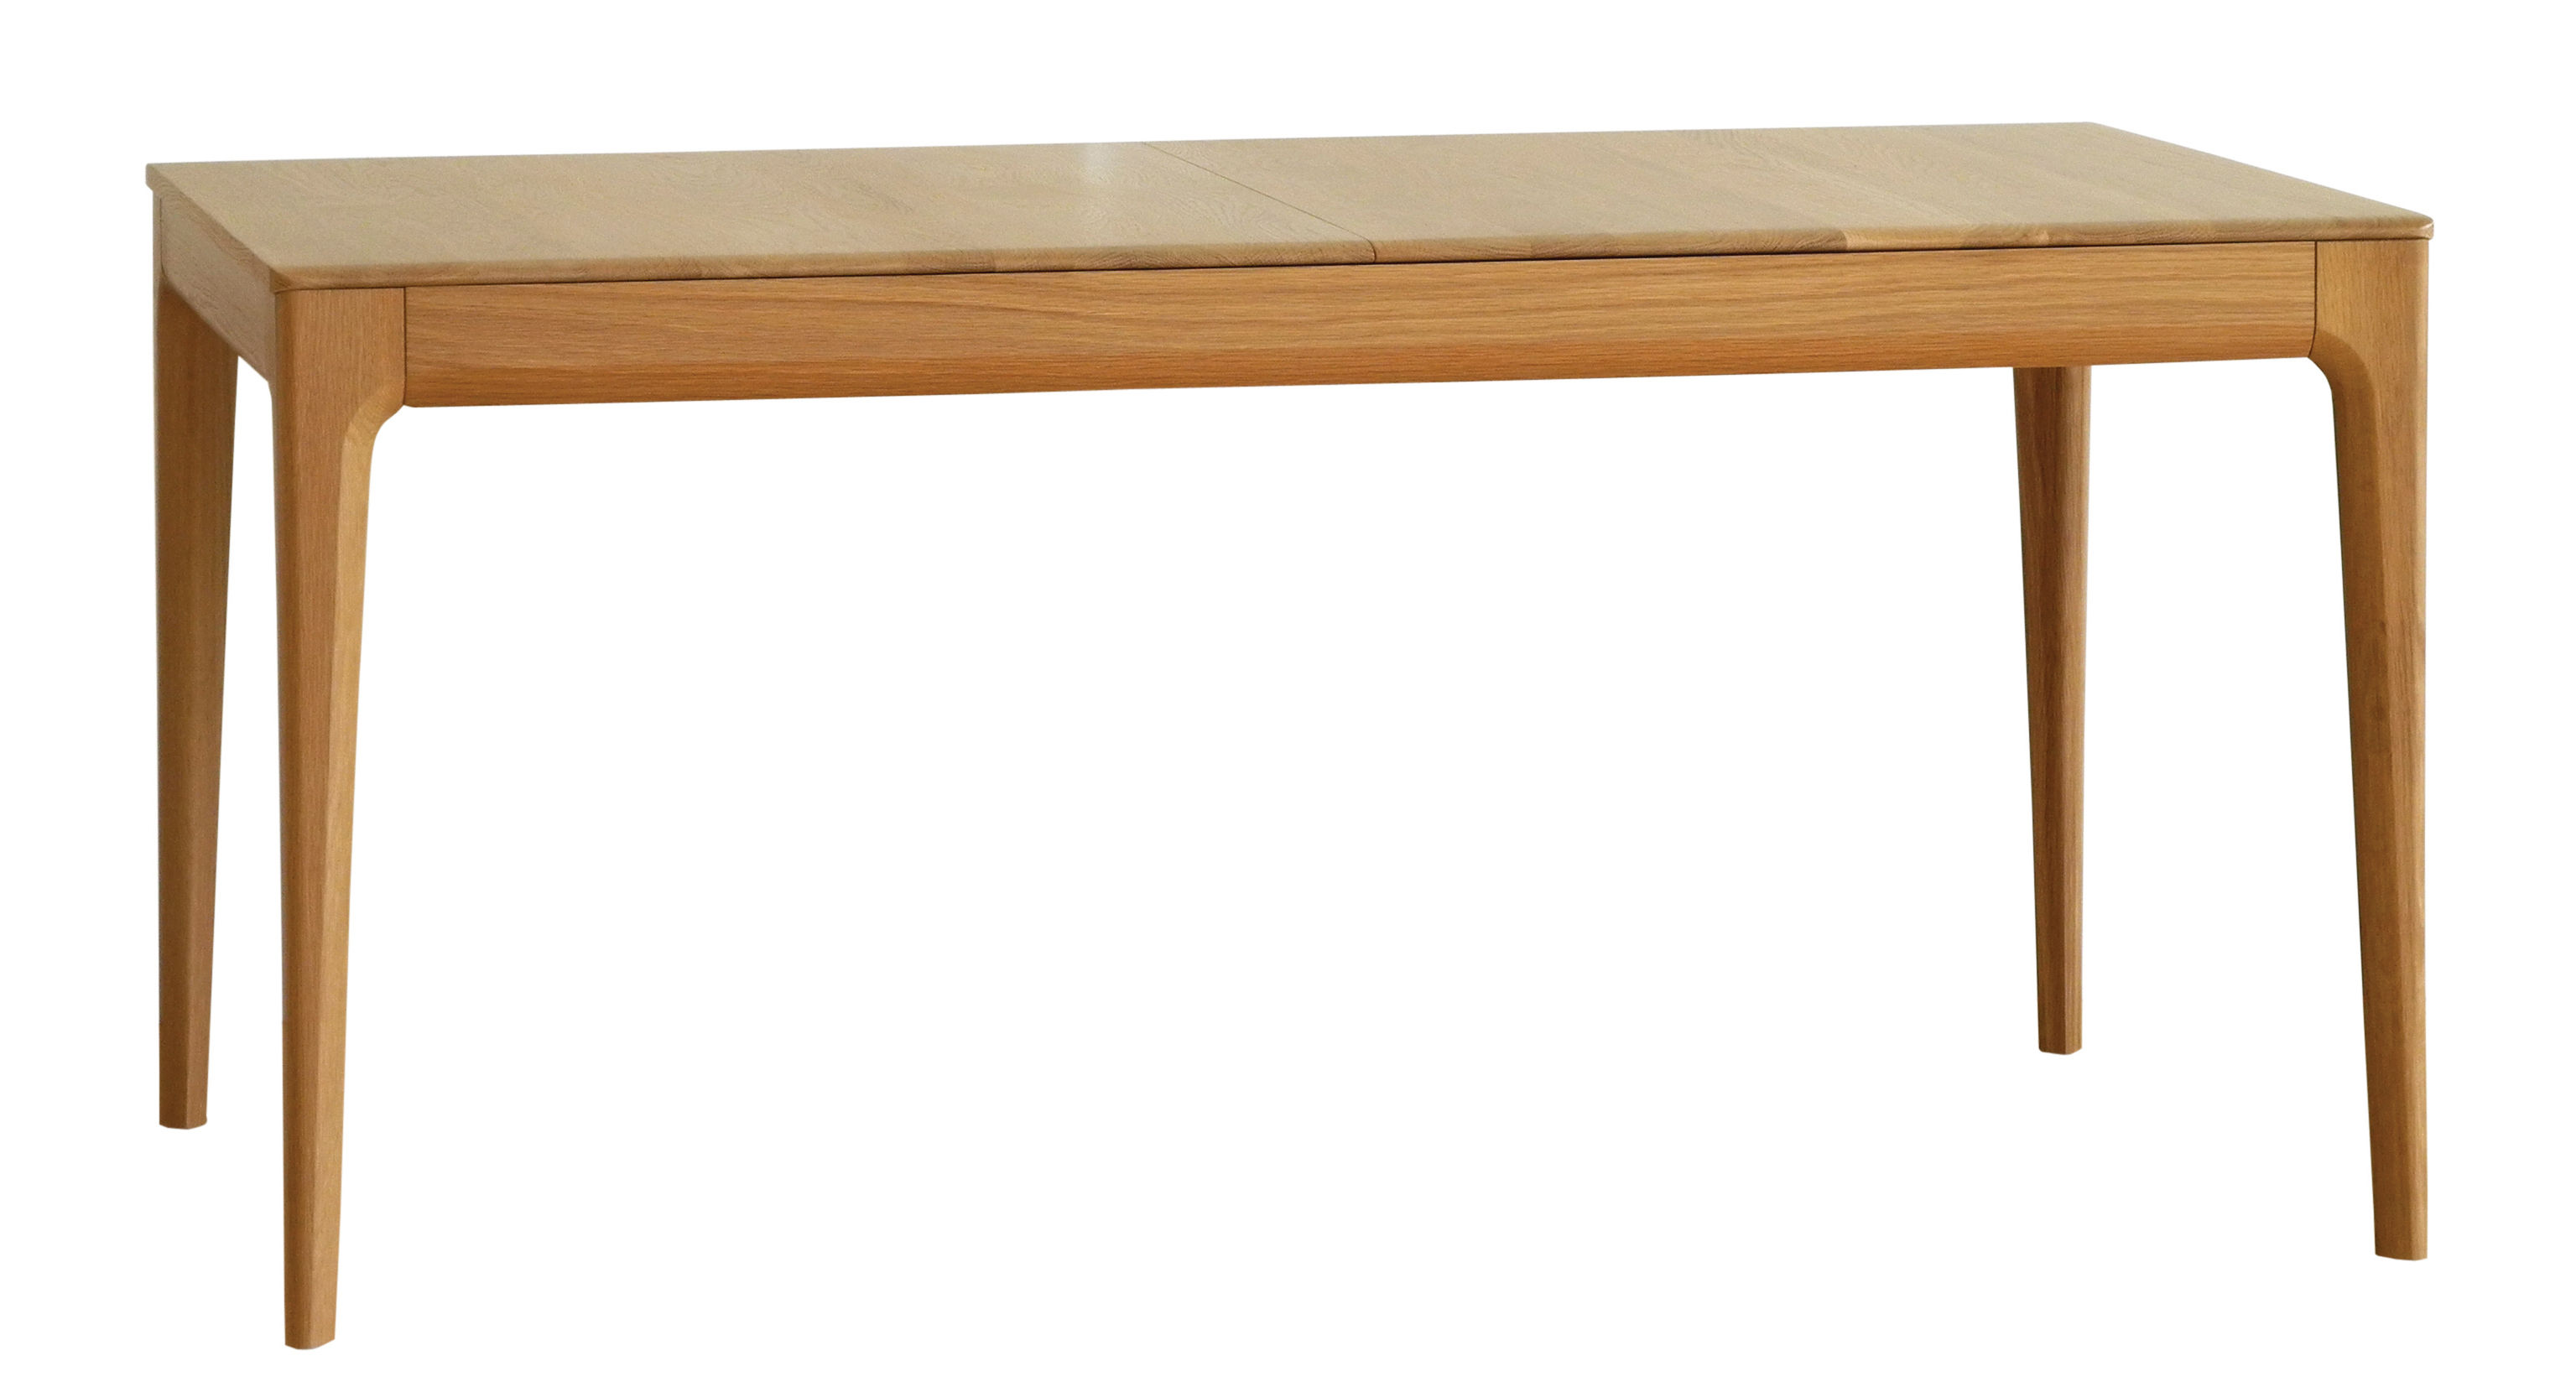 Product selections - Top 100 Furniture/bestseller - Romana Extending table - L 155 à 200 cm - 6 to 8 persons by Ercol - Oak / L 155 to 200 cm - Solid oak